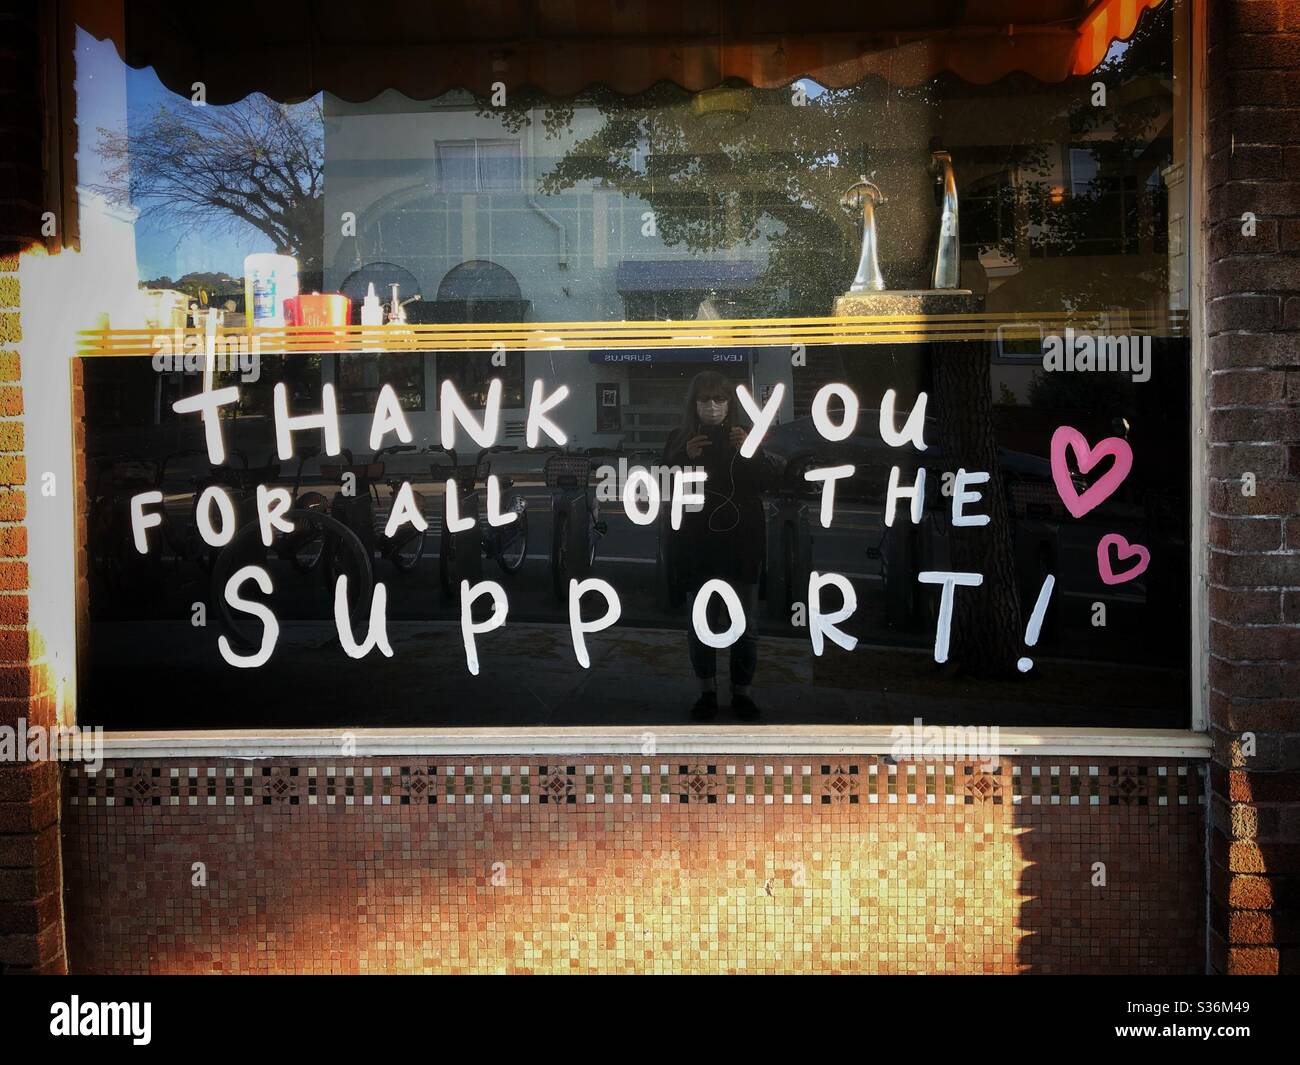 Thank you sign during the pandemic at Baker & Commons cafe in Berkeley, California. Stock Photo